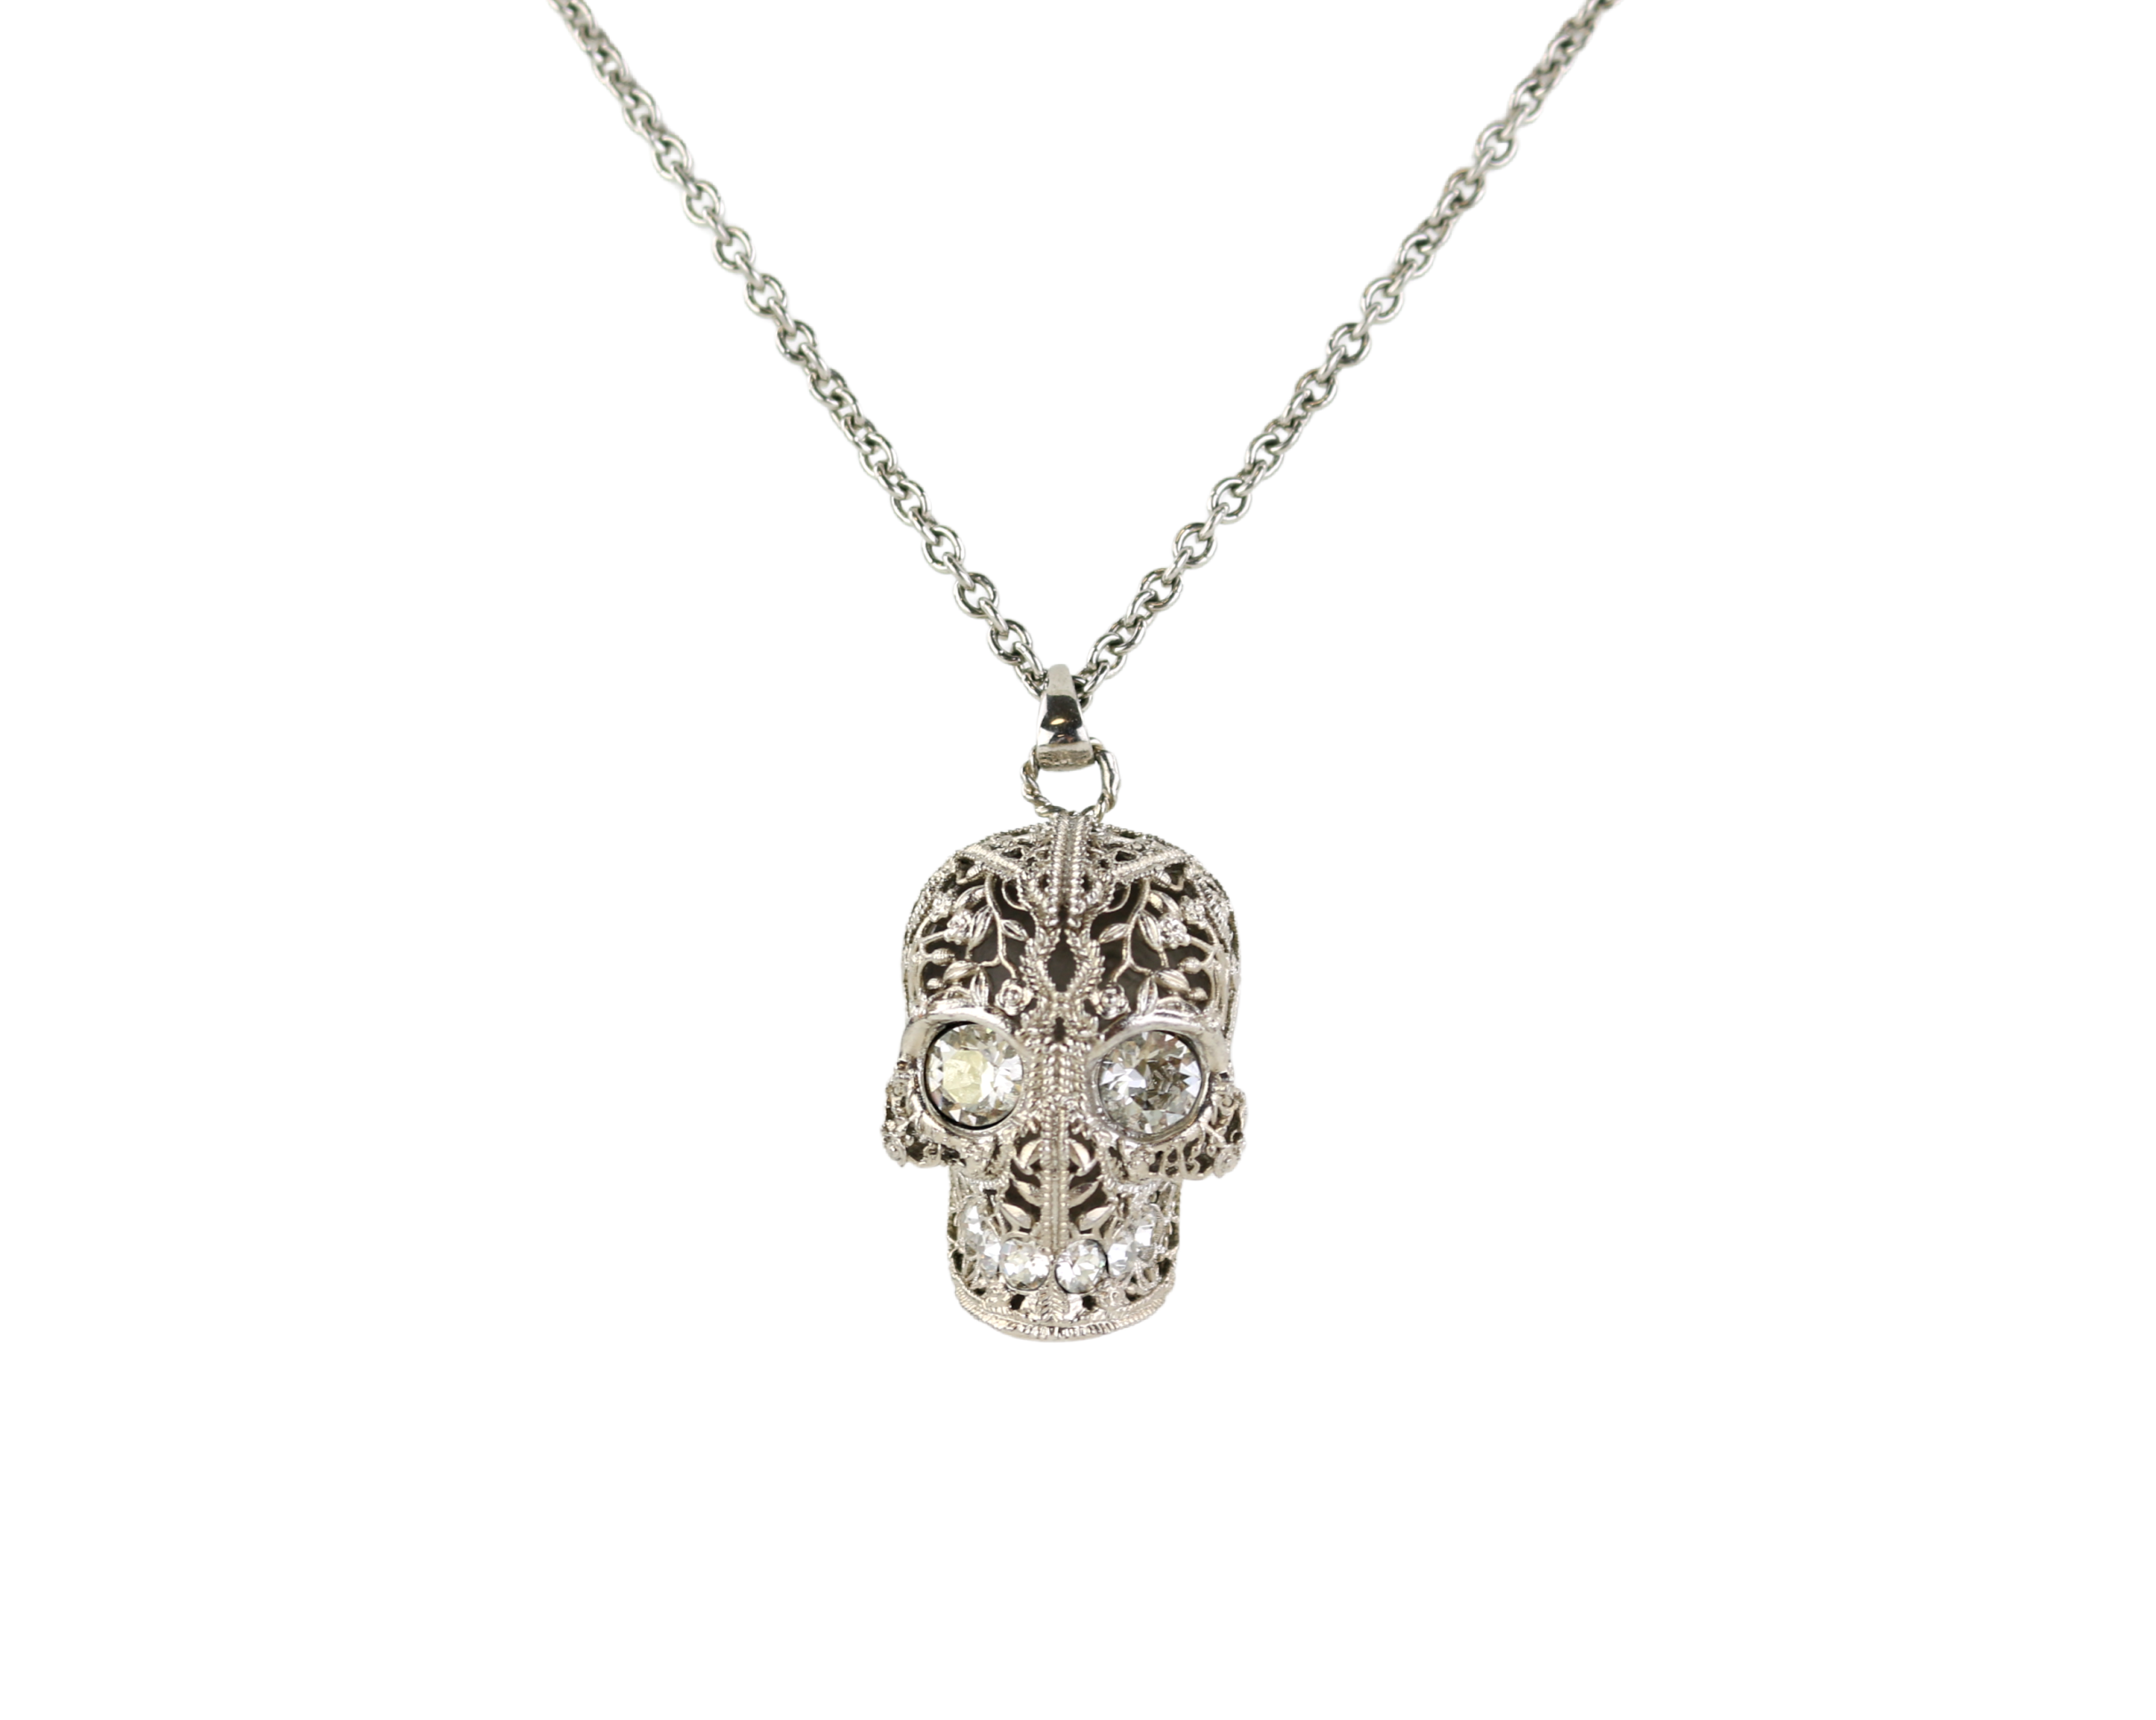 Silver/Crystal Skull Necklace